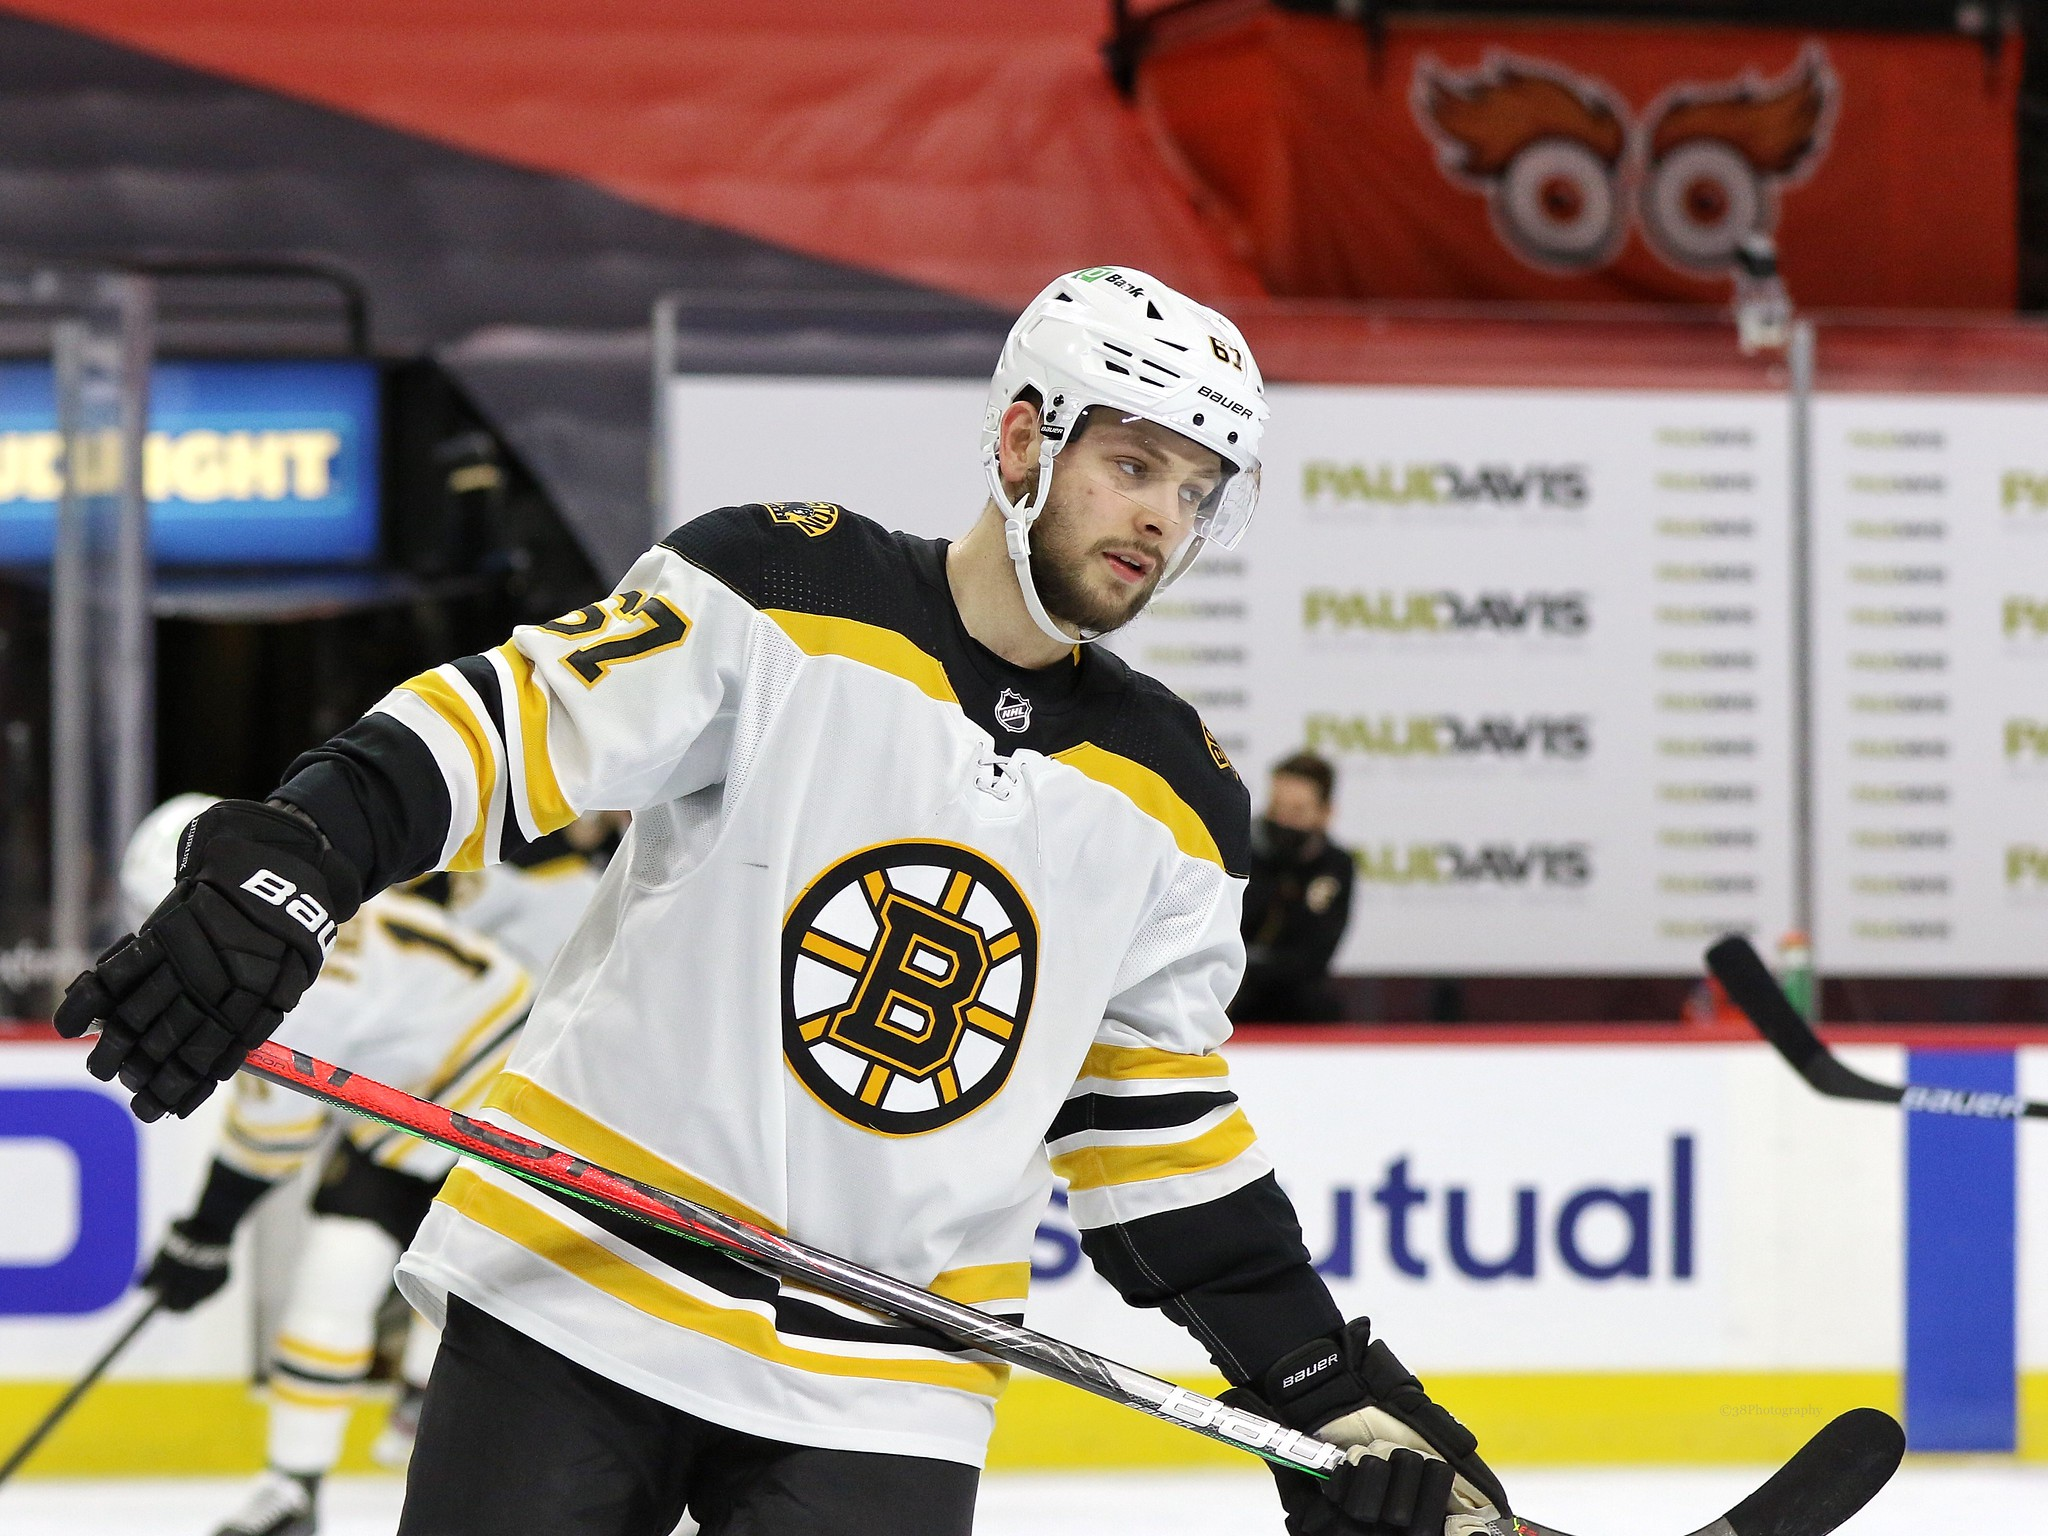 4 Bruins' Draft Picks From 2015 Making an Impact in 2020-21